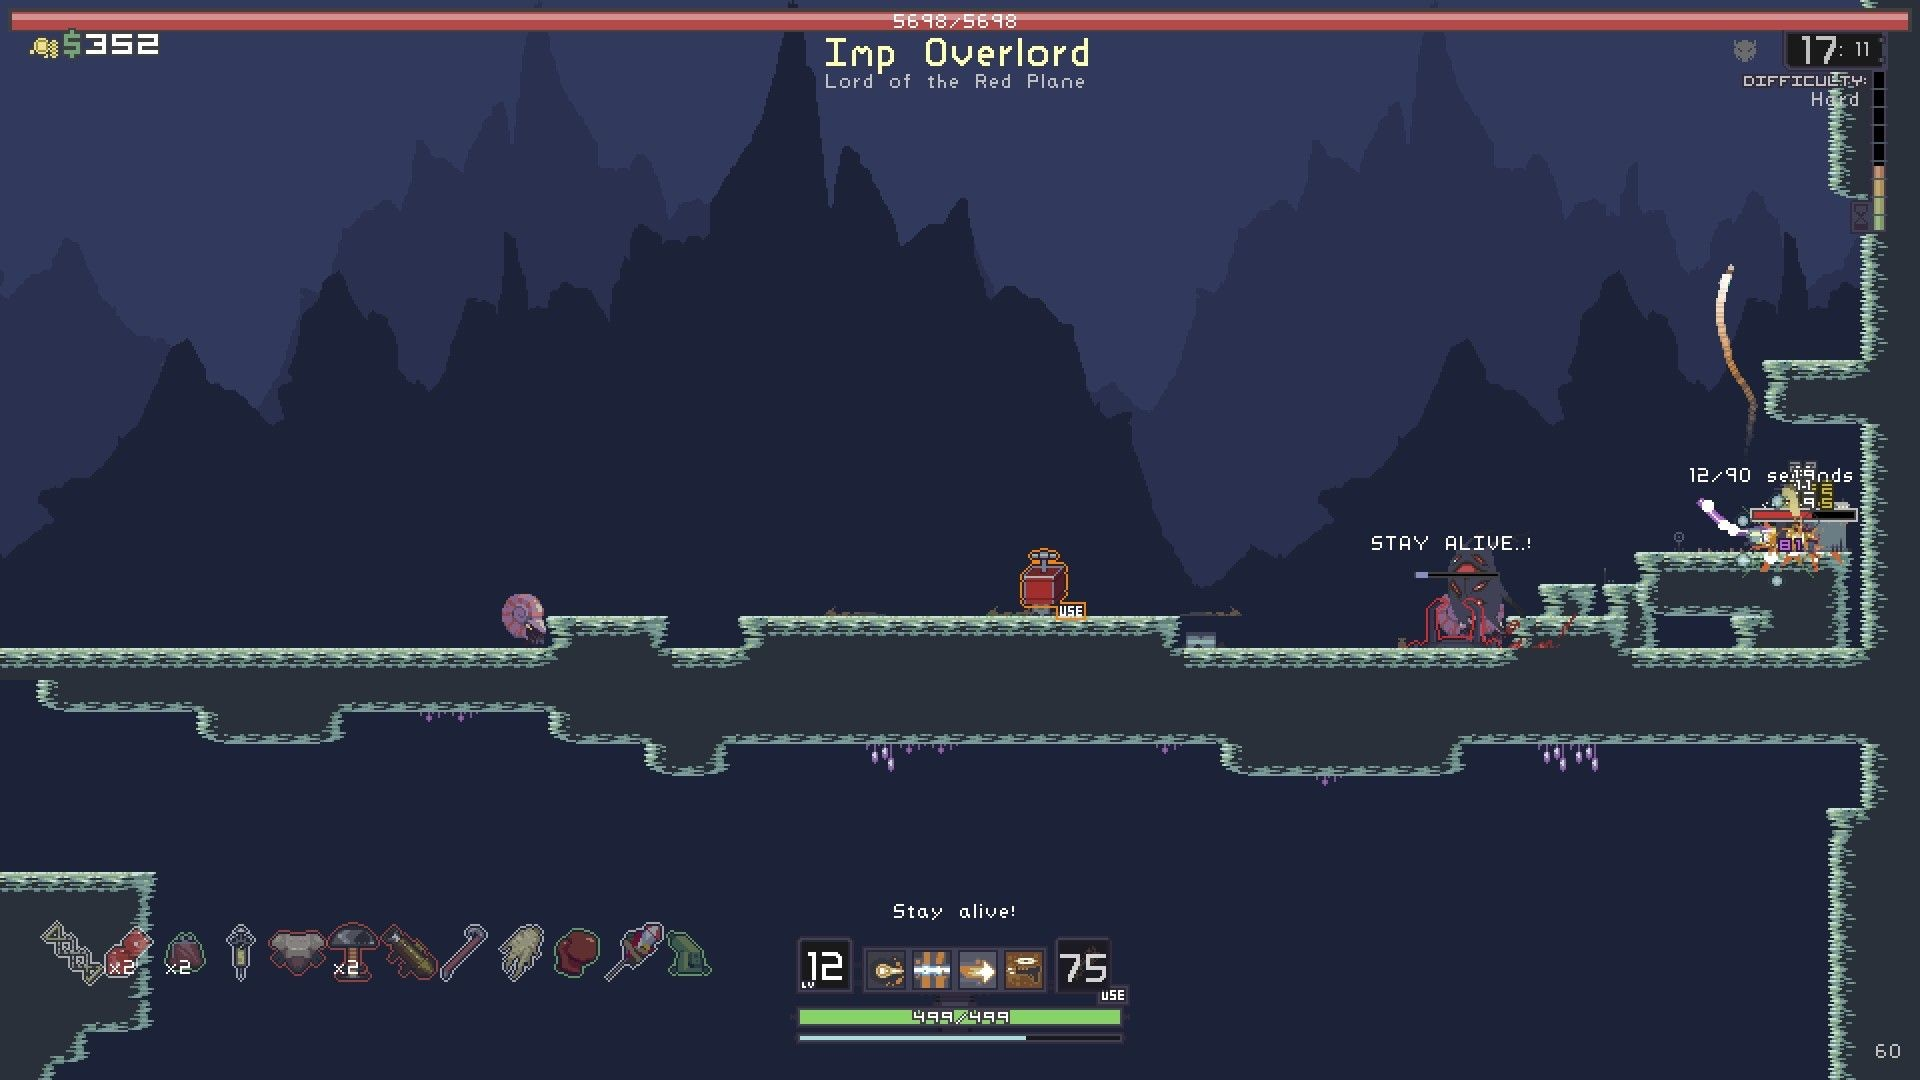 Another boss, The Imp Overlord. Lying on the ground is one usable item.